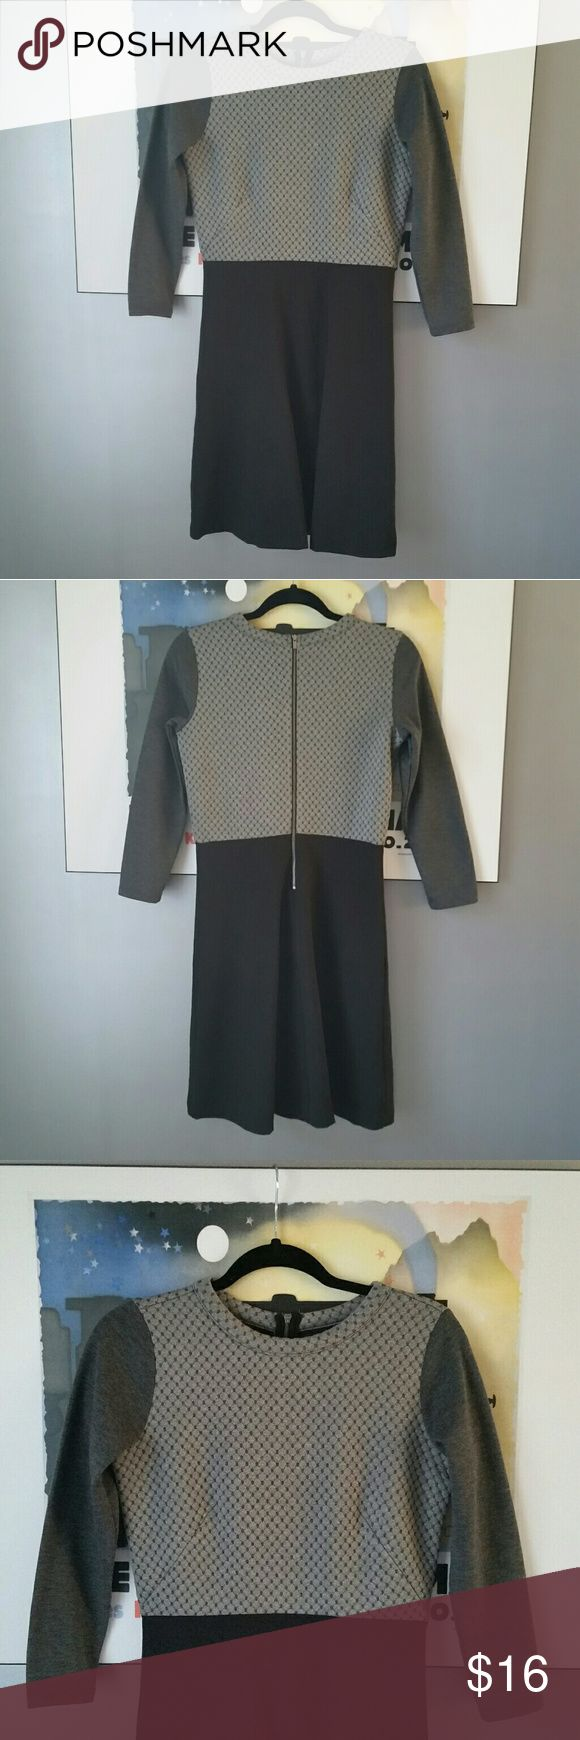 🐺Loft Colorblock Dress🐺 Grey and black 3/4 sleeve dress, excellent condition. The bodice part has a quilted texture to it. LOFT Dresses